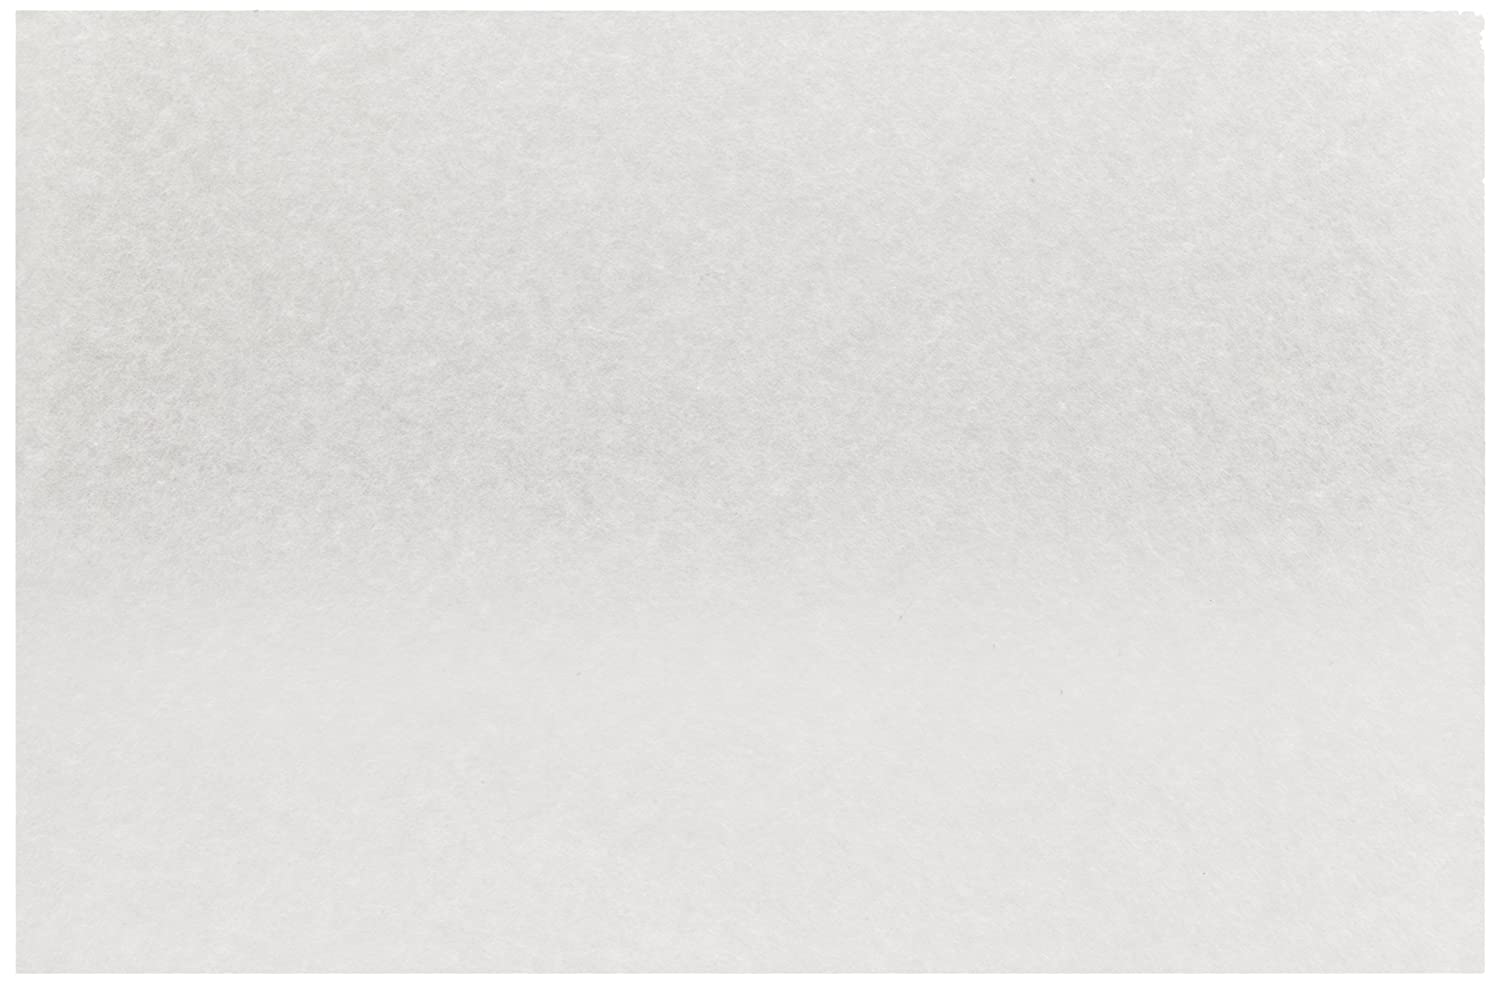 Whatman 2105-862 Lens Cleaning Tissue Grade 105 Sheets 300mm Length x 200mm Width Pack of 100